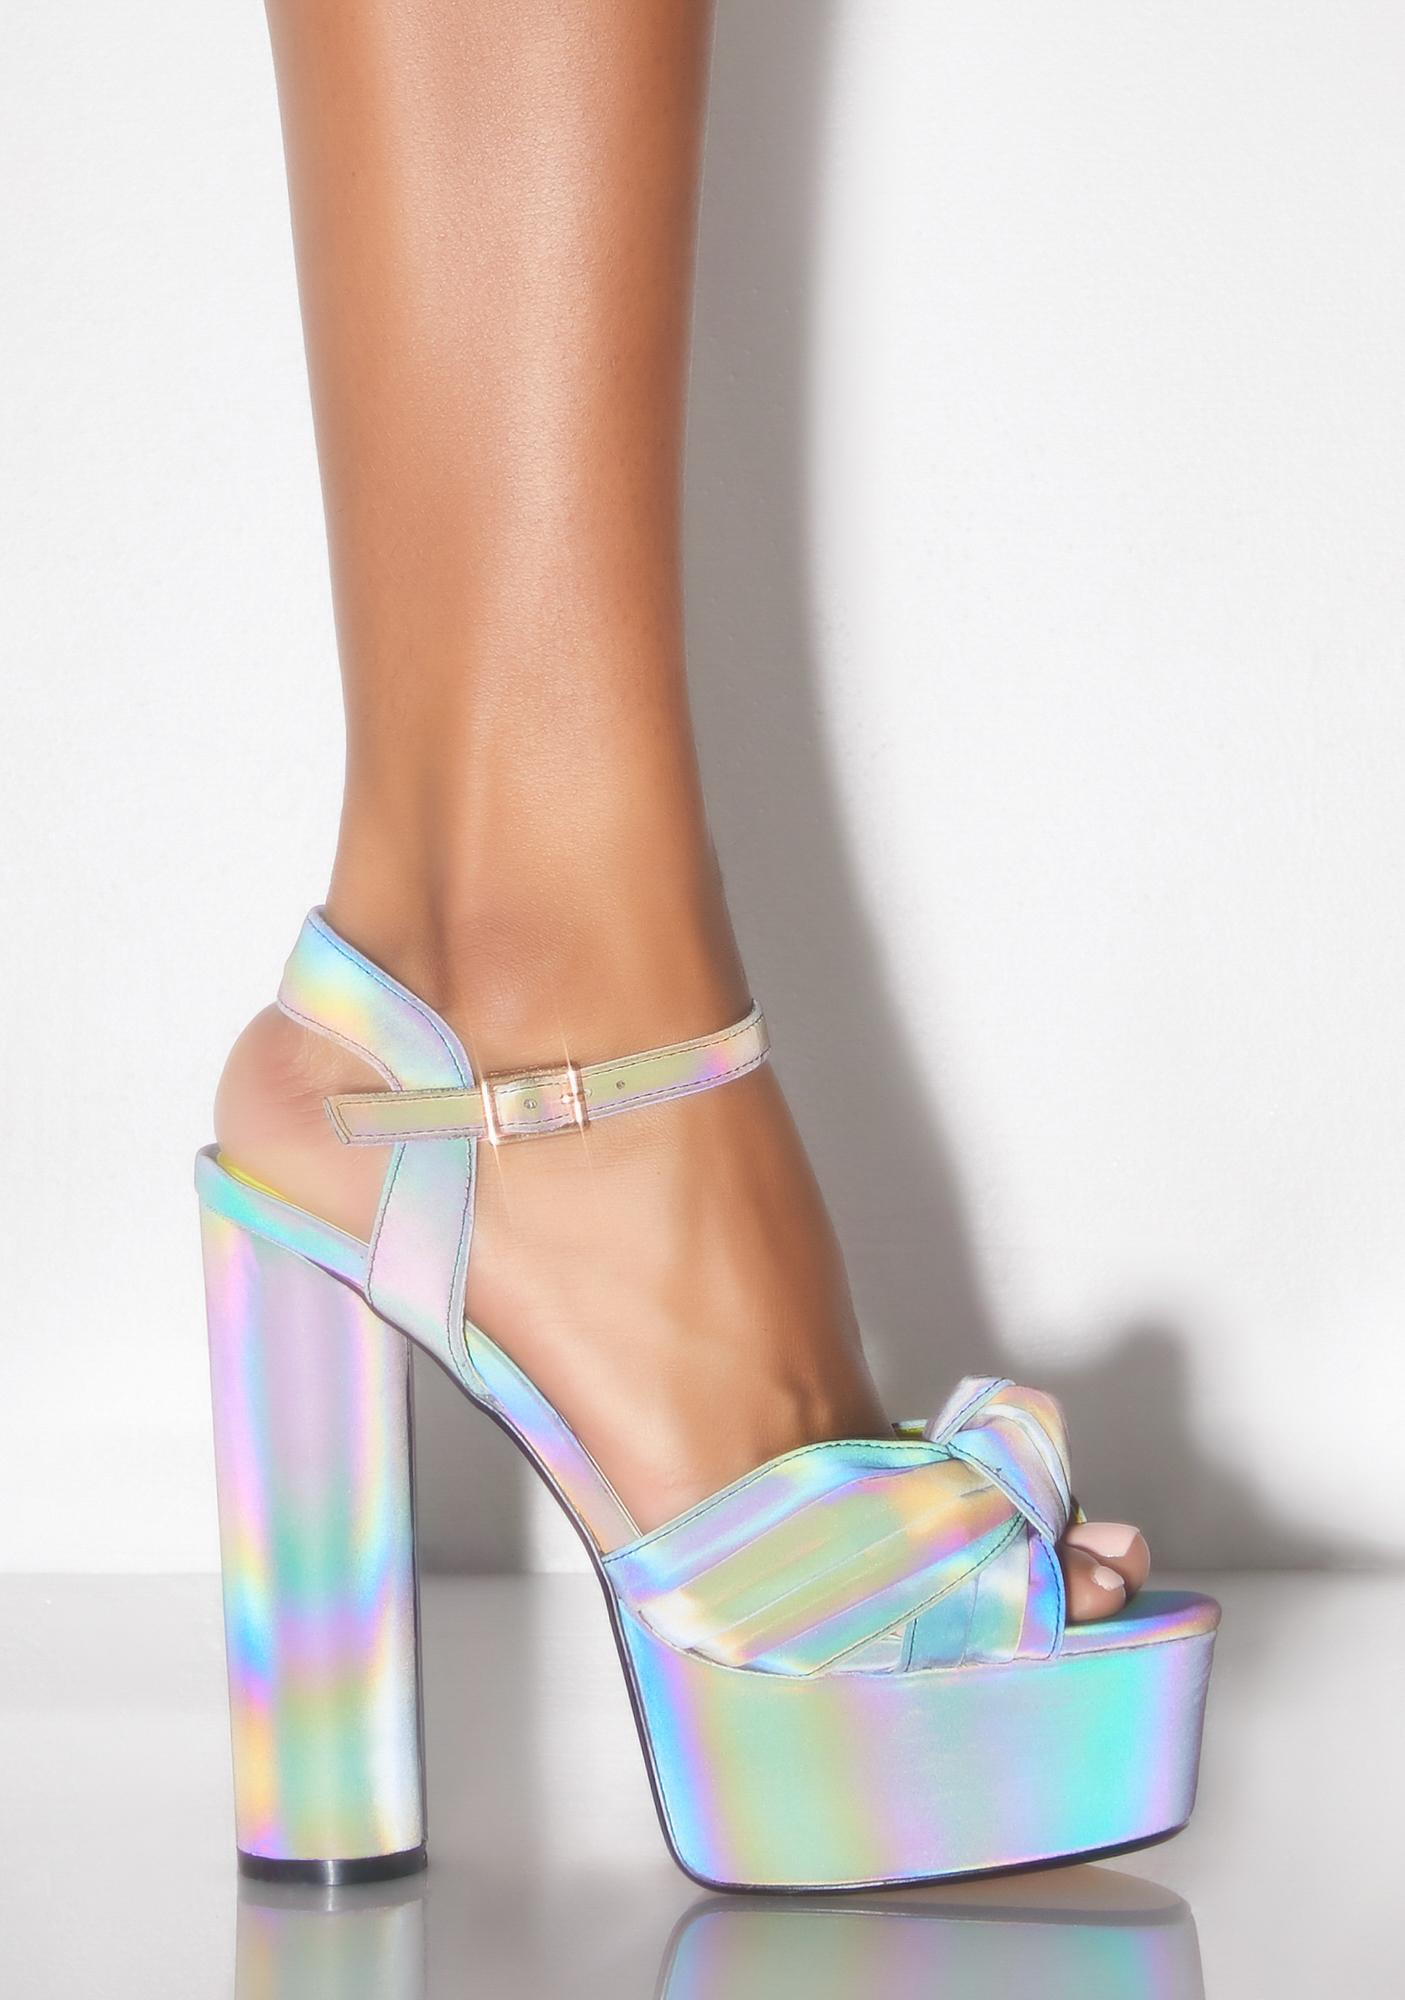 Try Me Reflective Heels by